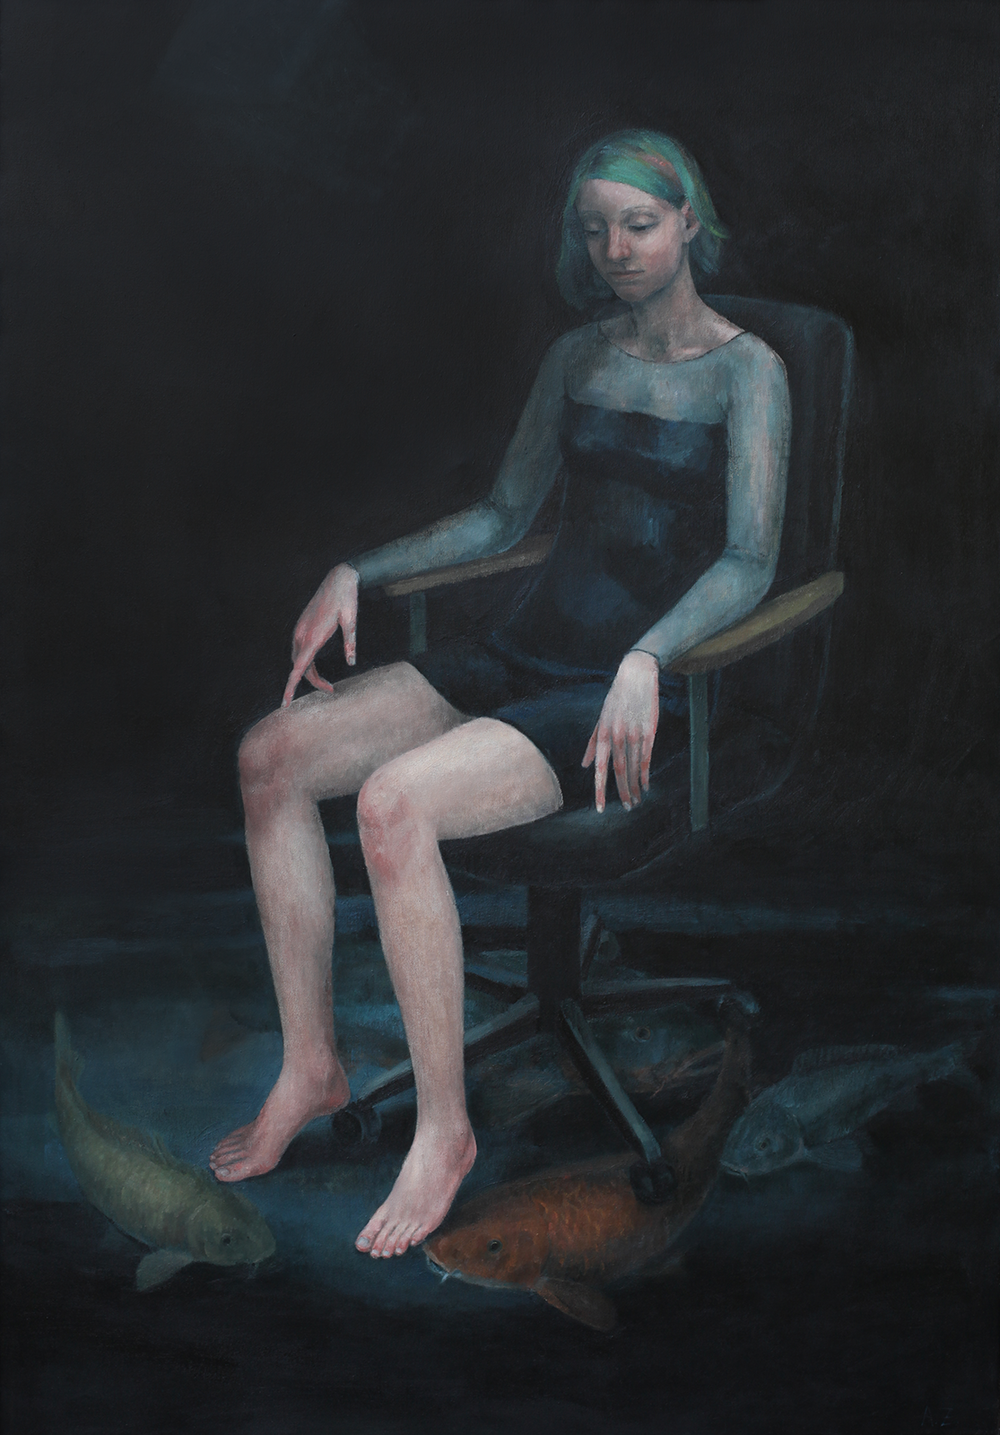 Oil on canvas, 170x120cm